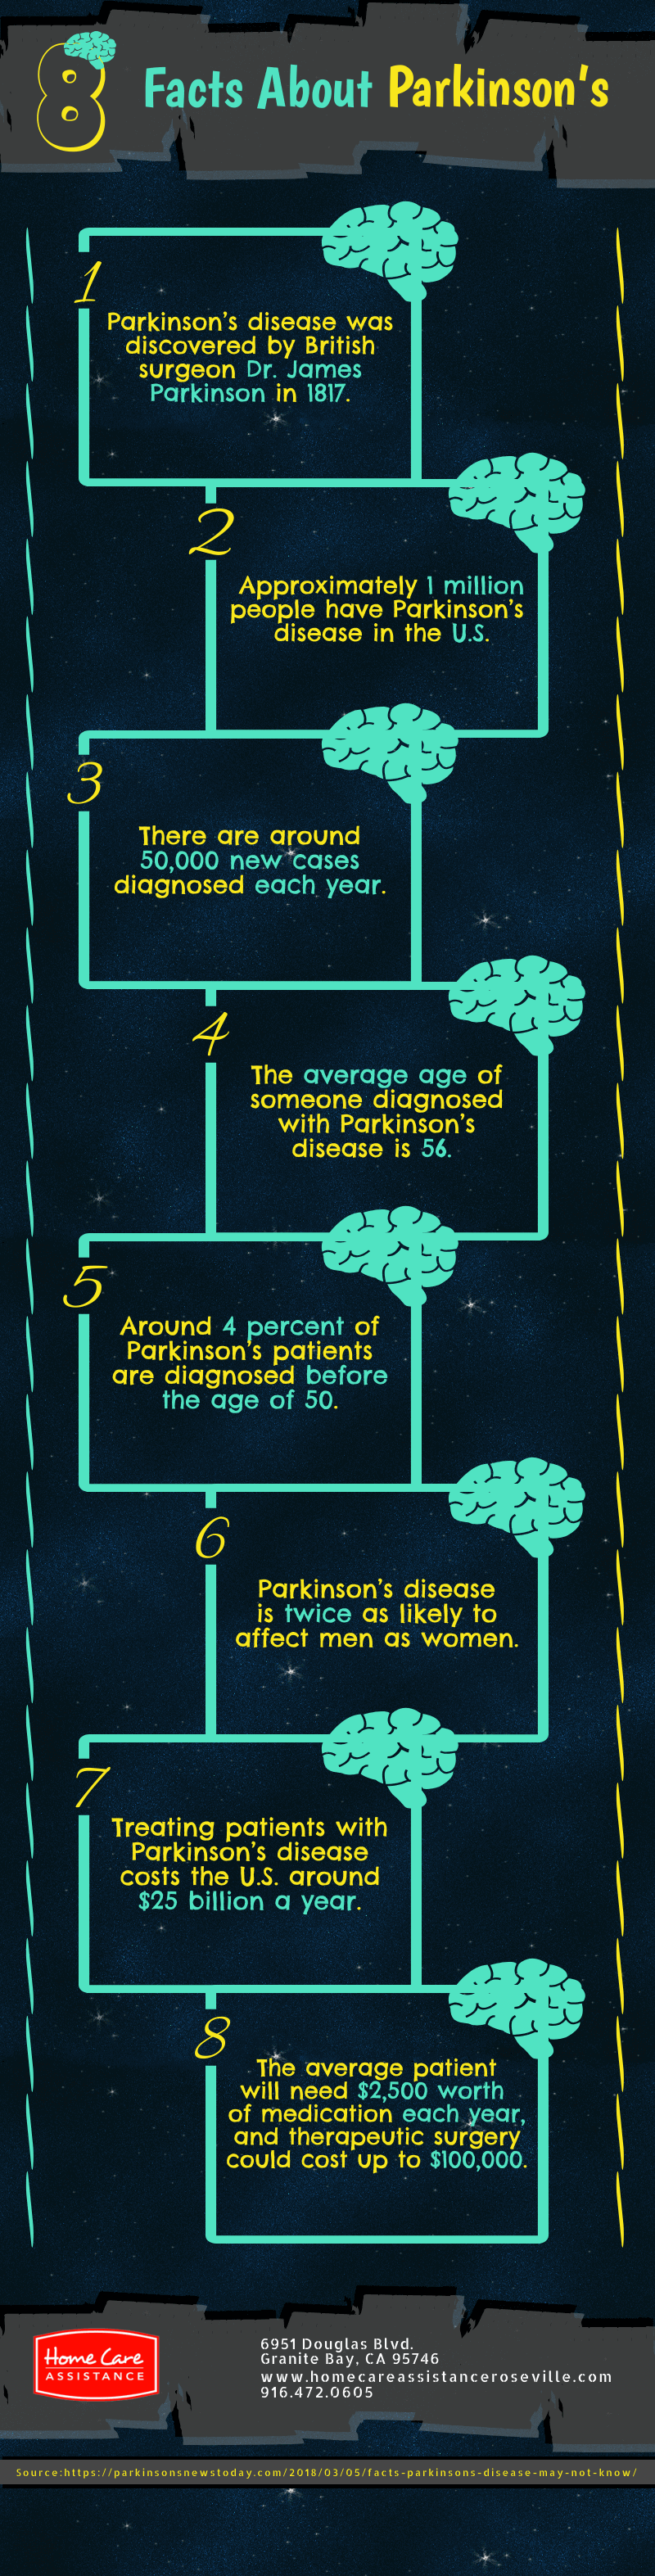 8 Facts About Parkinson's Disease You Need to Know